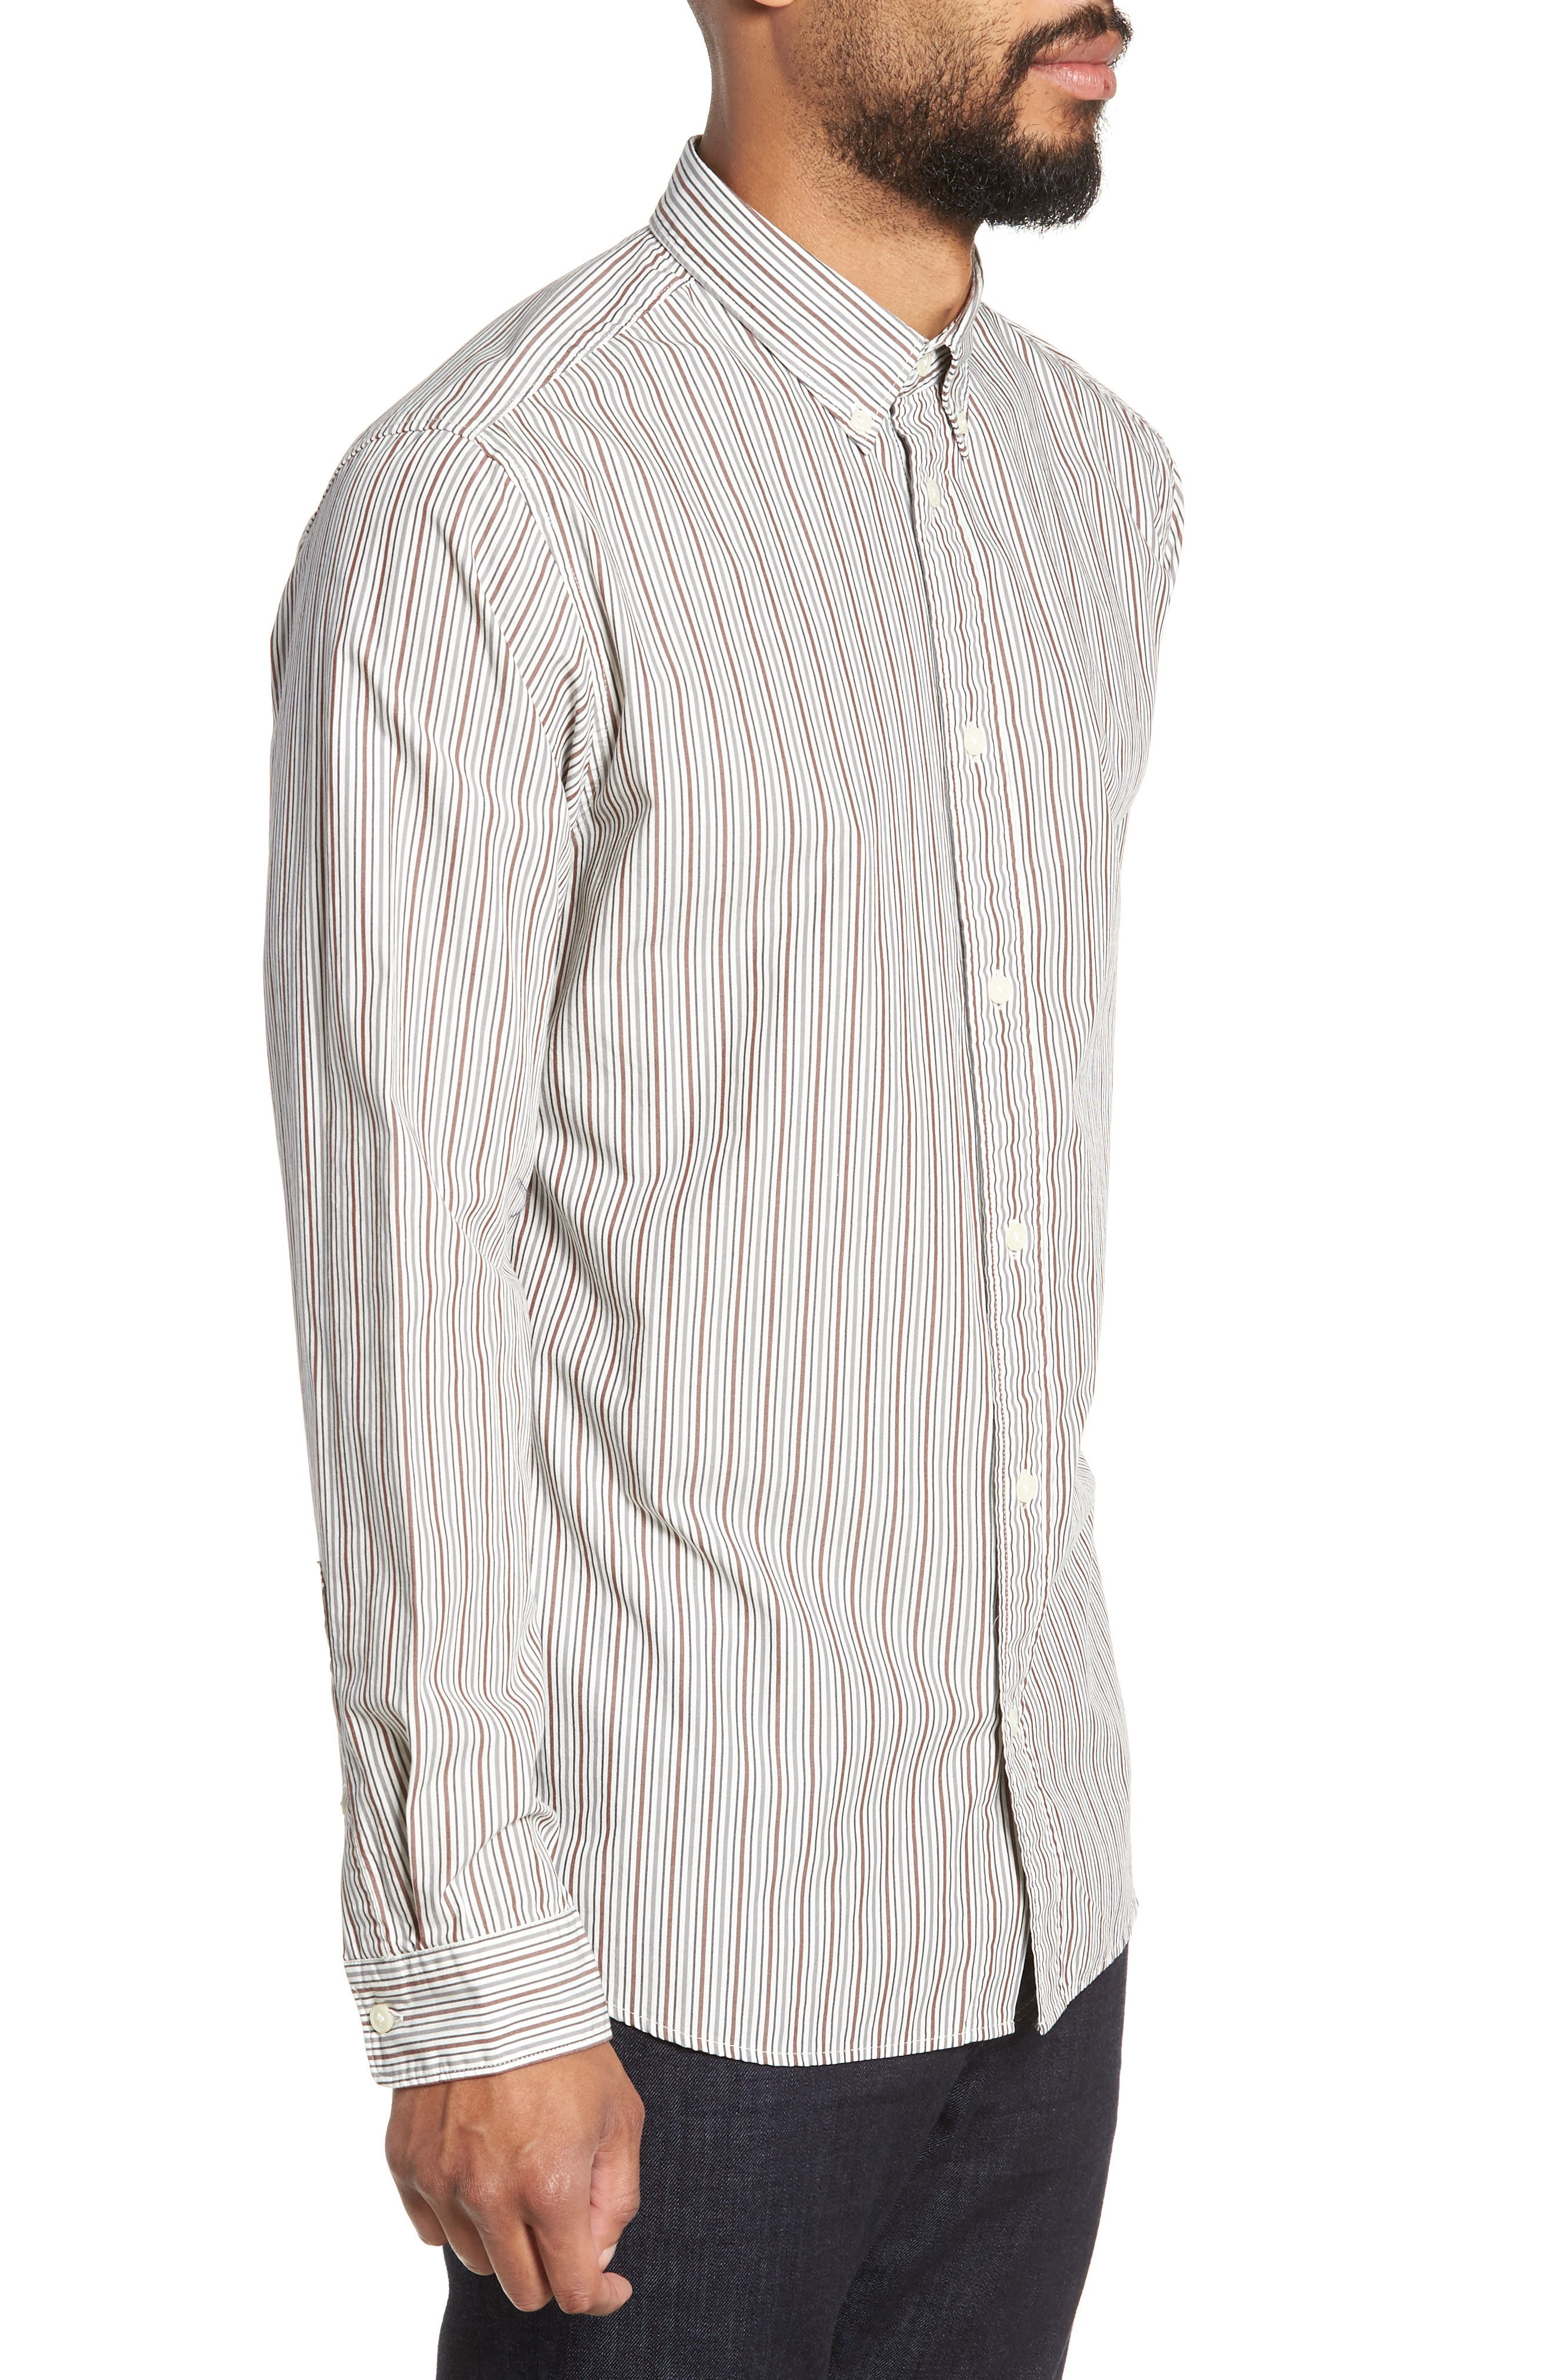 Carlo Regular Fit Stripe Sport Shirt,                             Alternate thumbnail 4, color,                             QUIET SHADE STRIPES